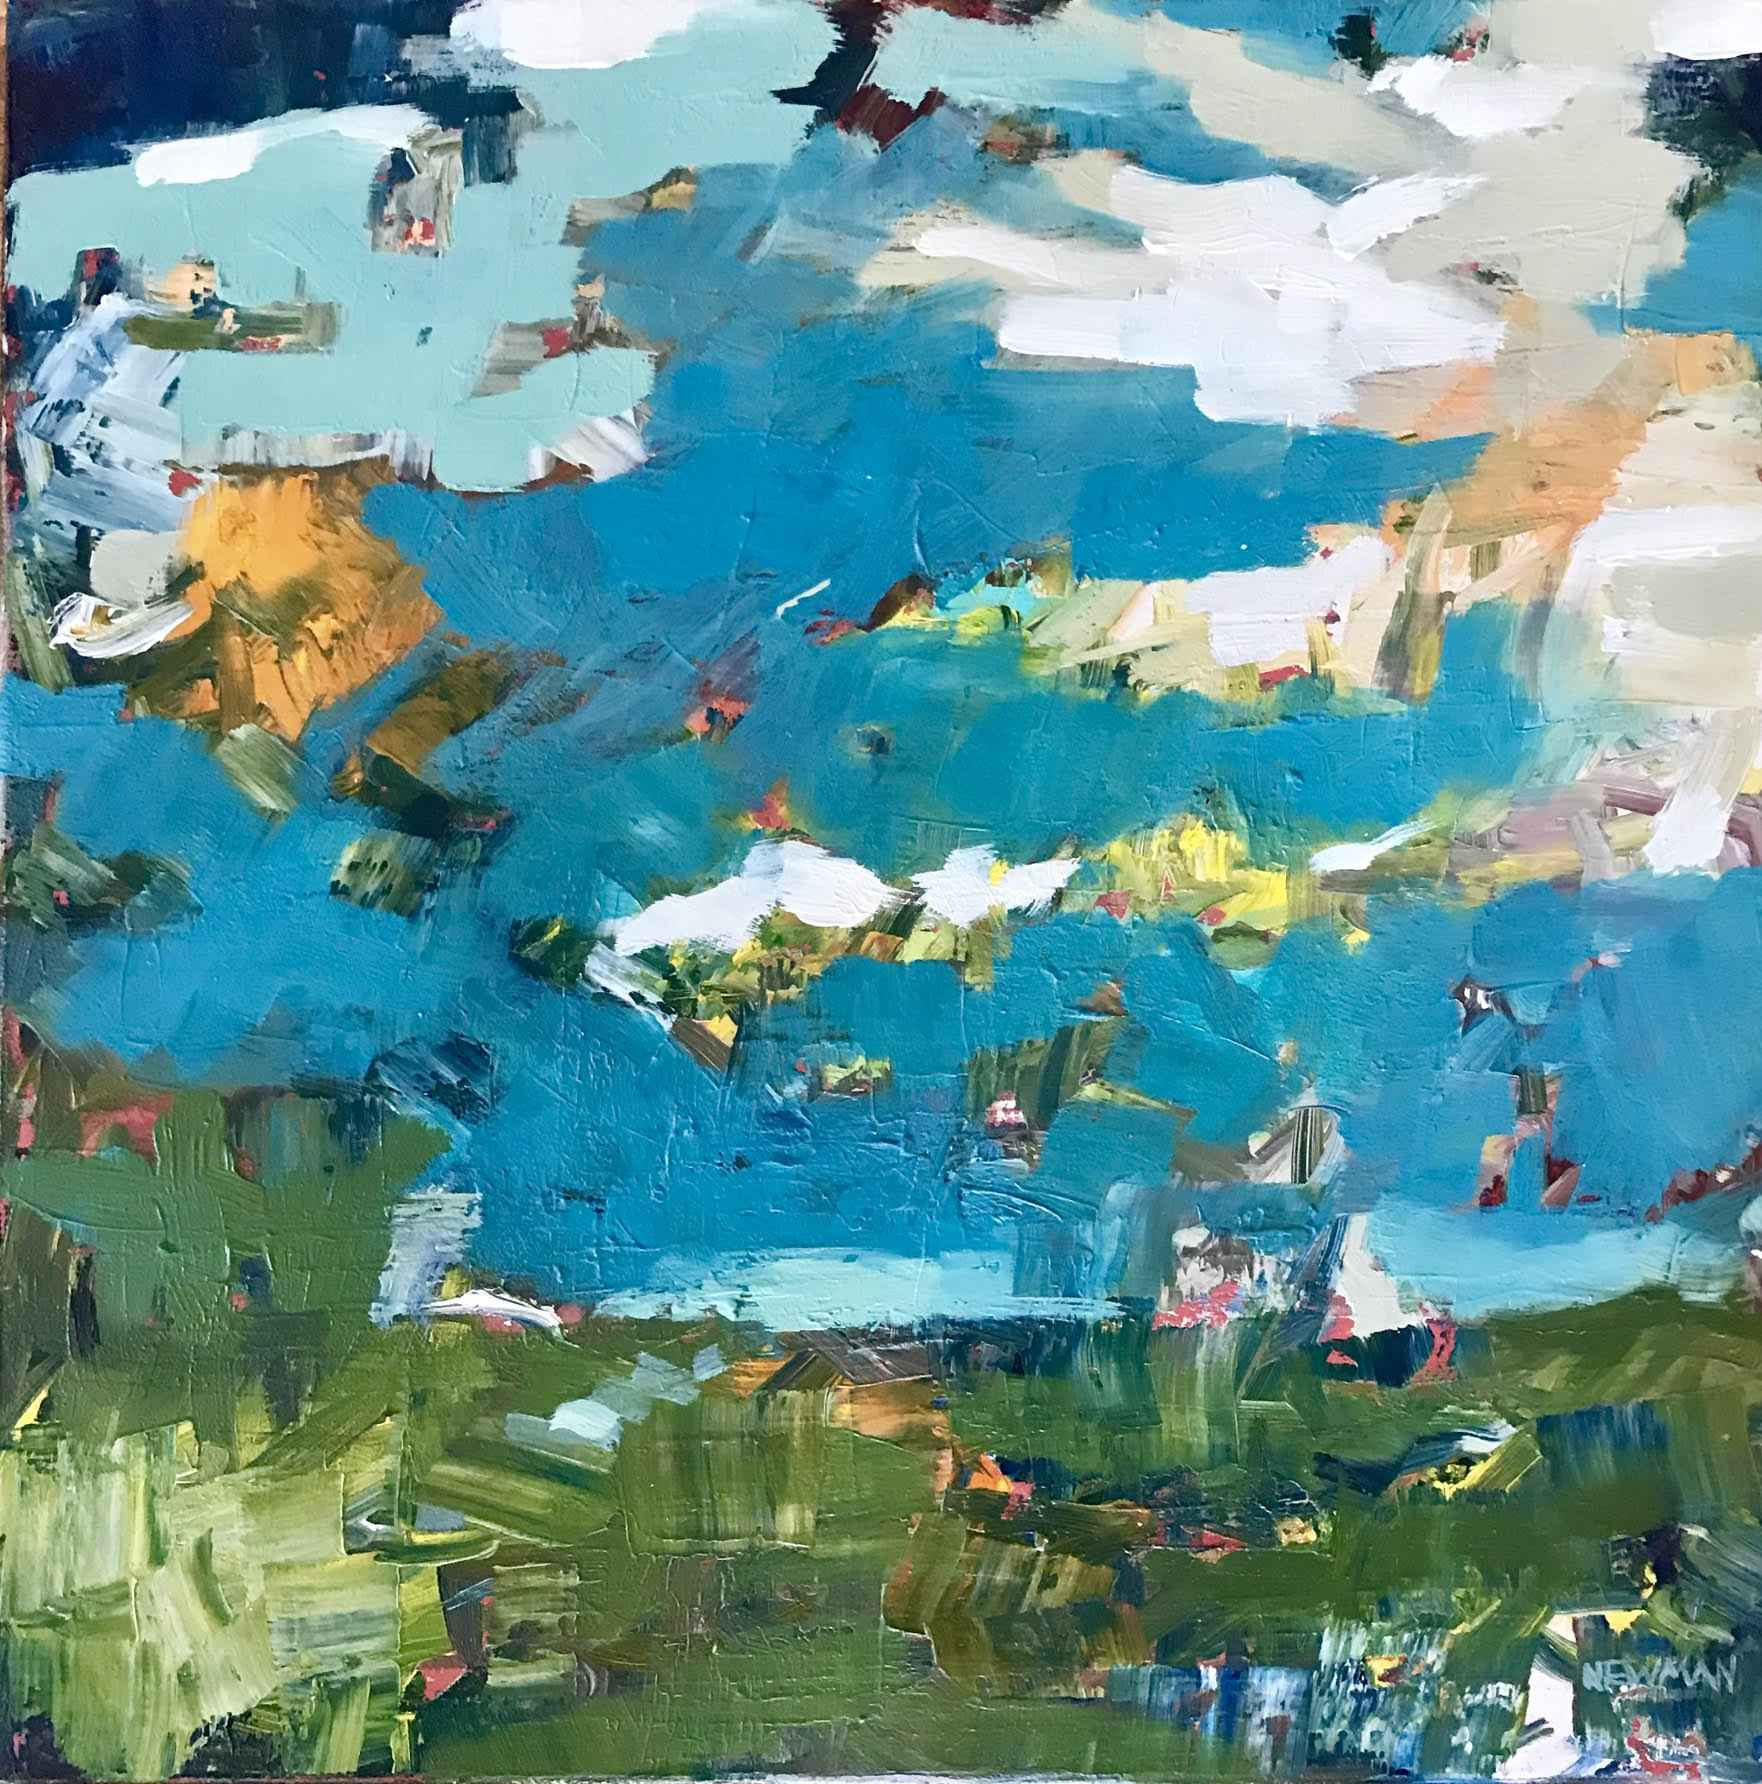 The Sky Has No Limits by  Marlise Newman - Masterpiece Online